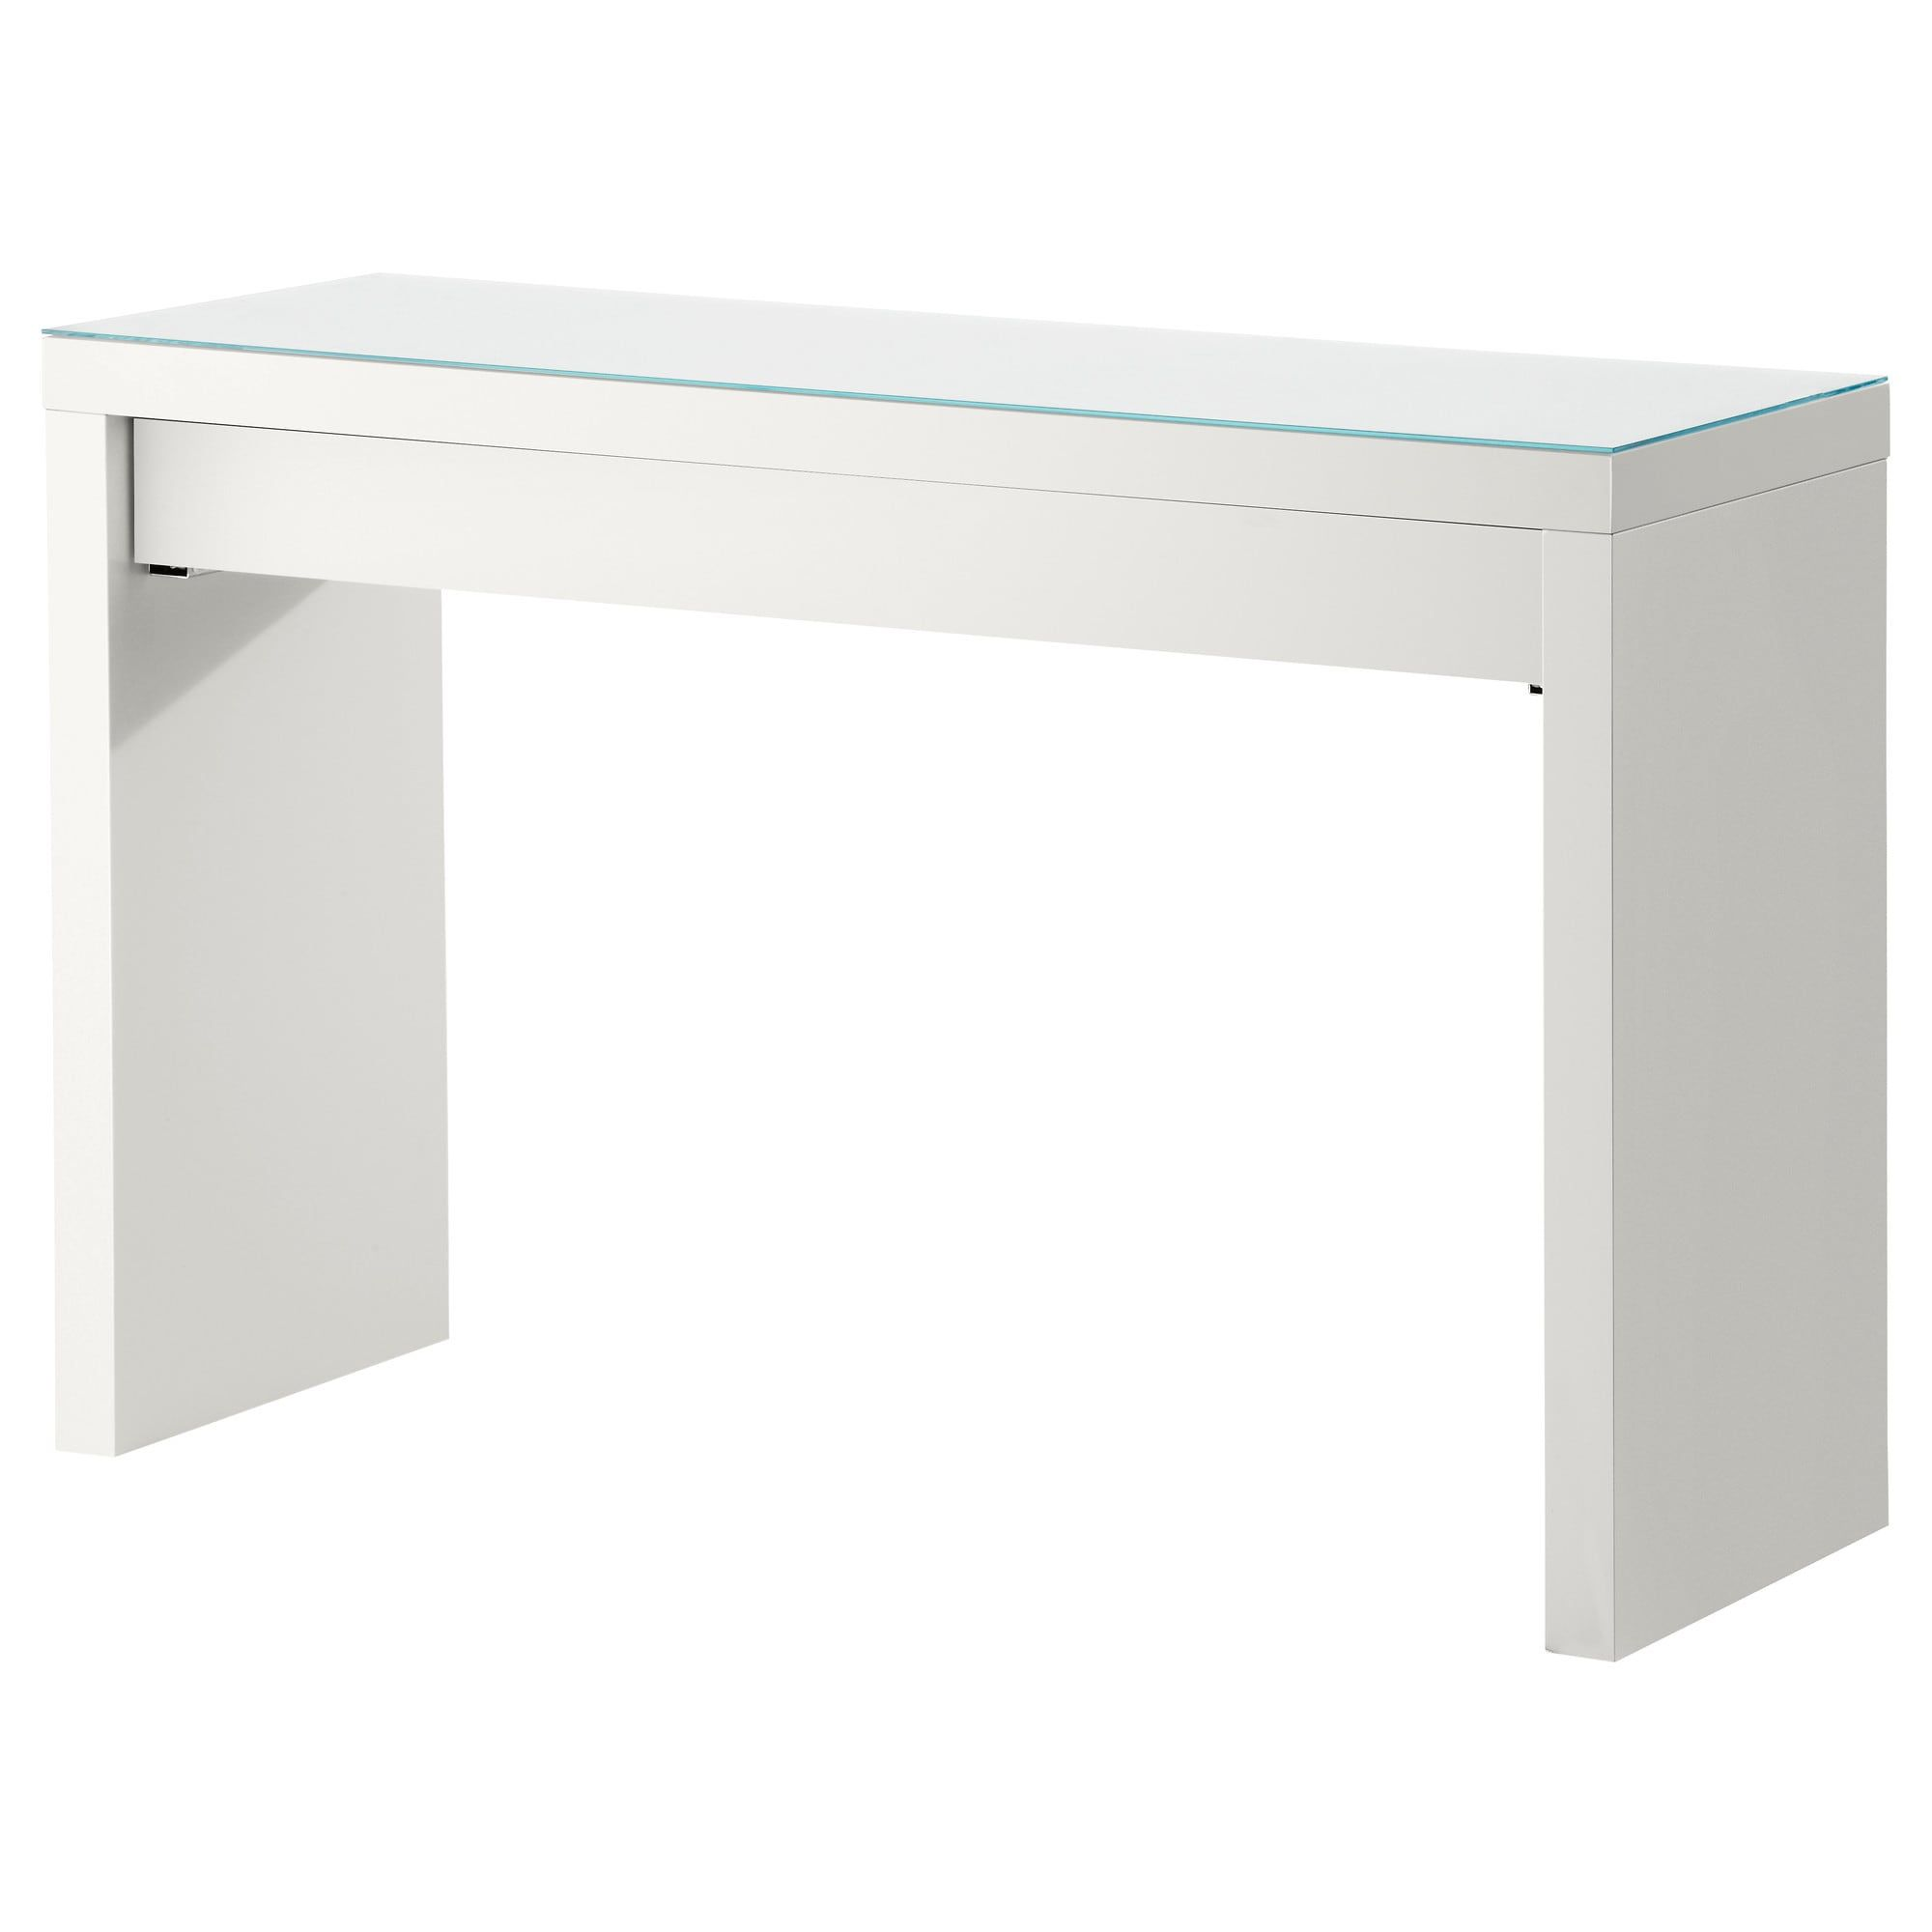 ikea malm dressing table white in 2019 products ikea. Black Bedroom Furniture Sets. Home Design Ideas